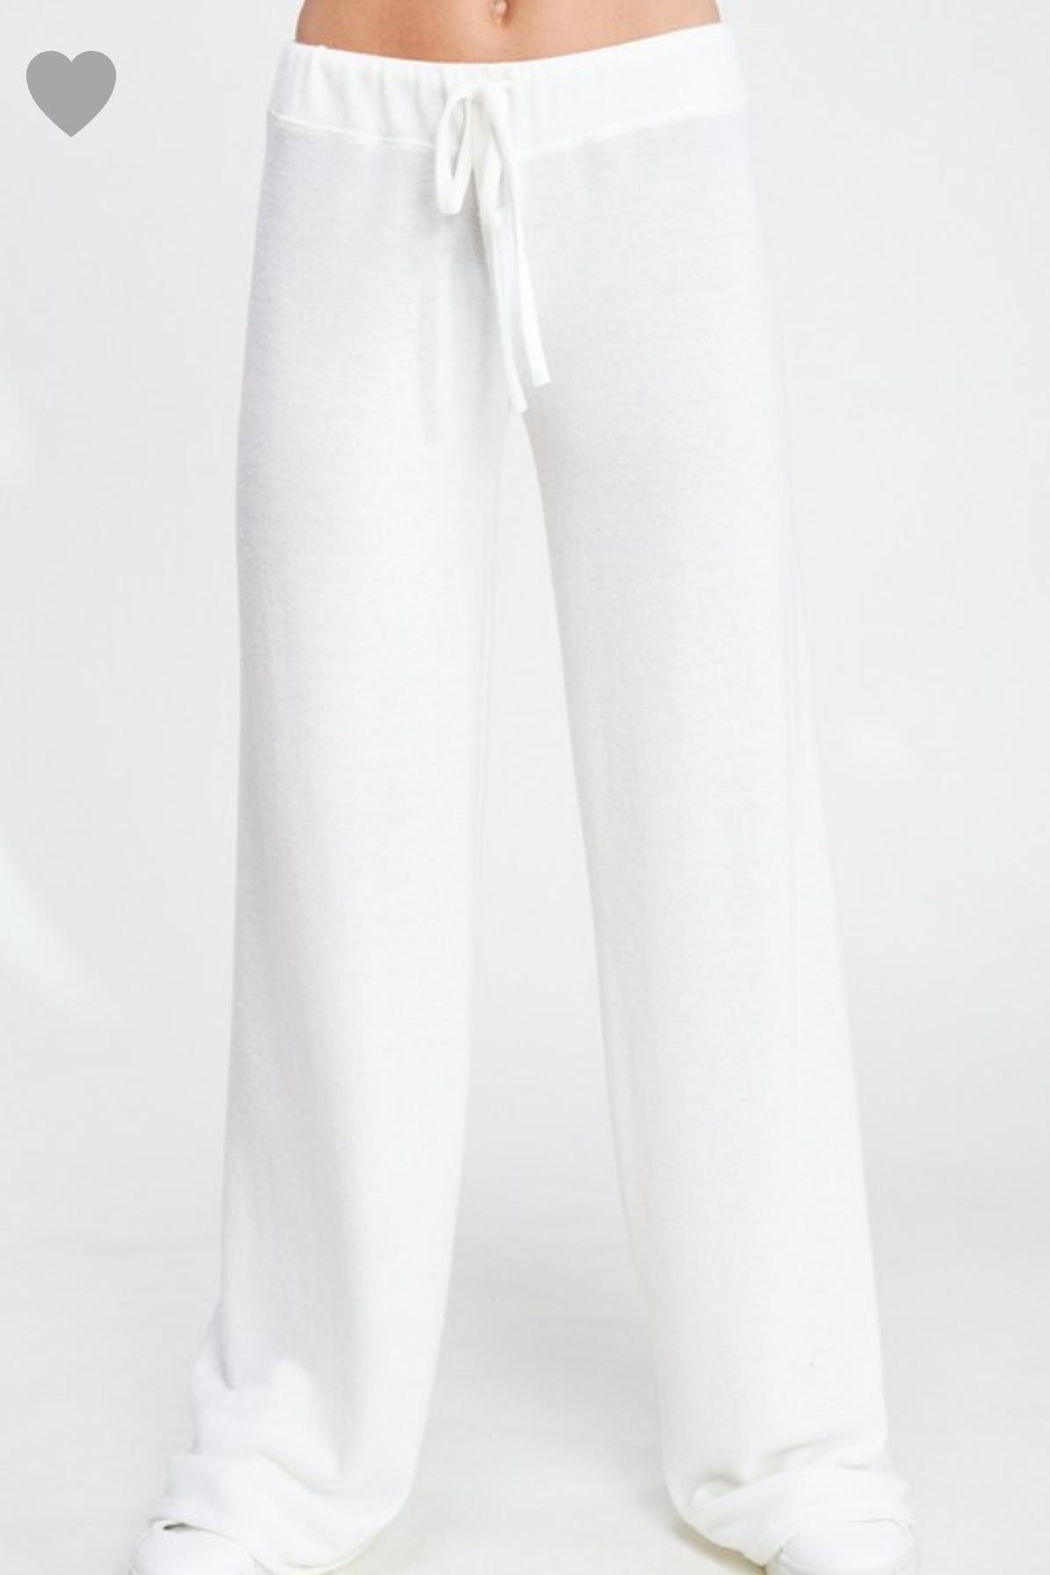 Phil Love Soft White Lounge Pants - Side Cropped Image